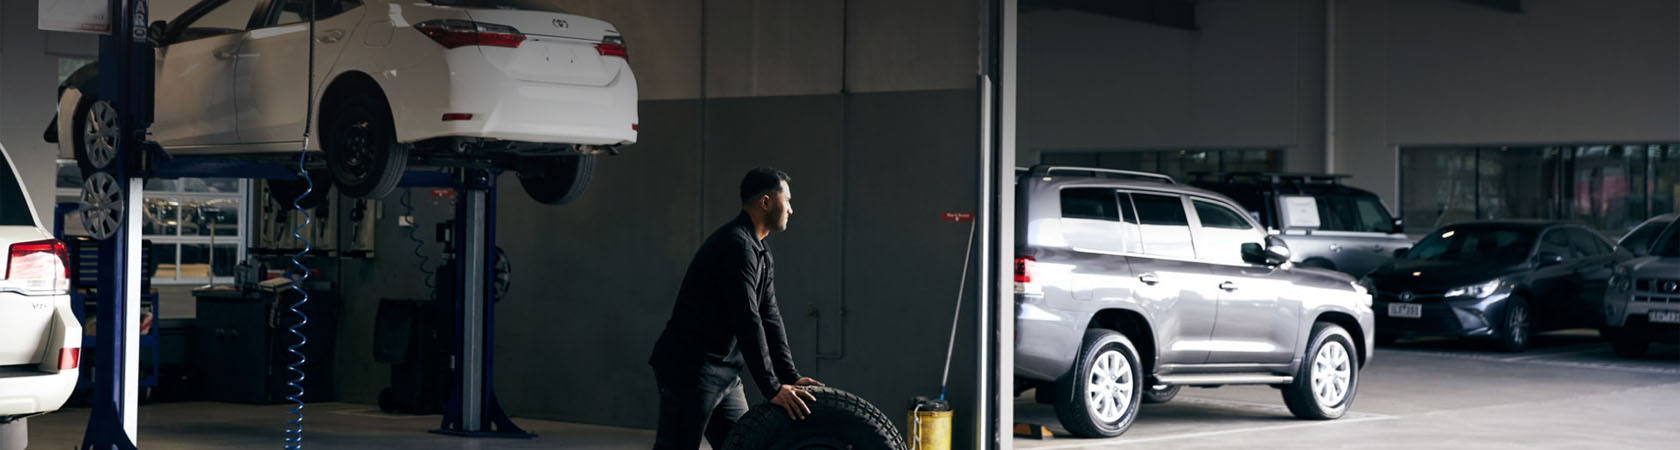 Leeton Toyota Vehicle Service